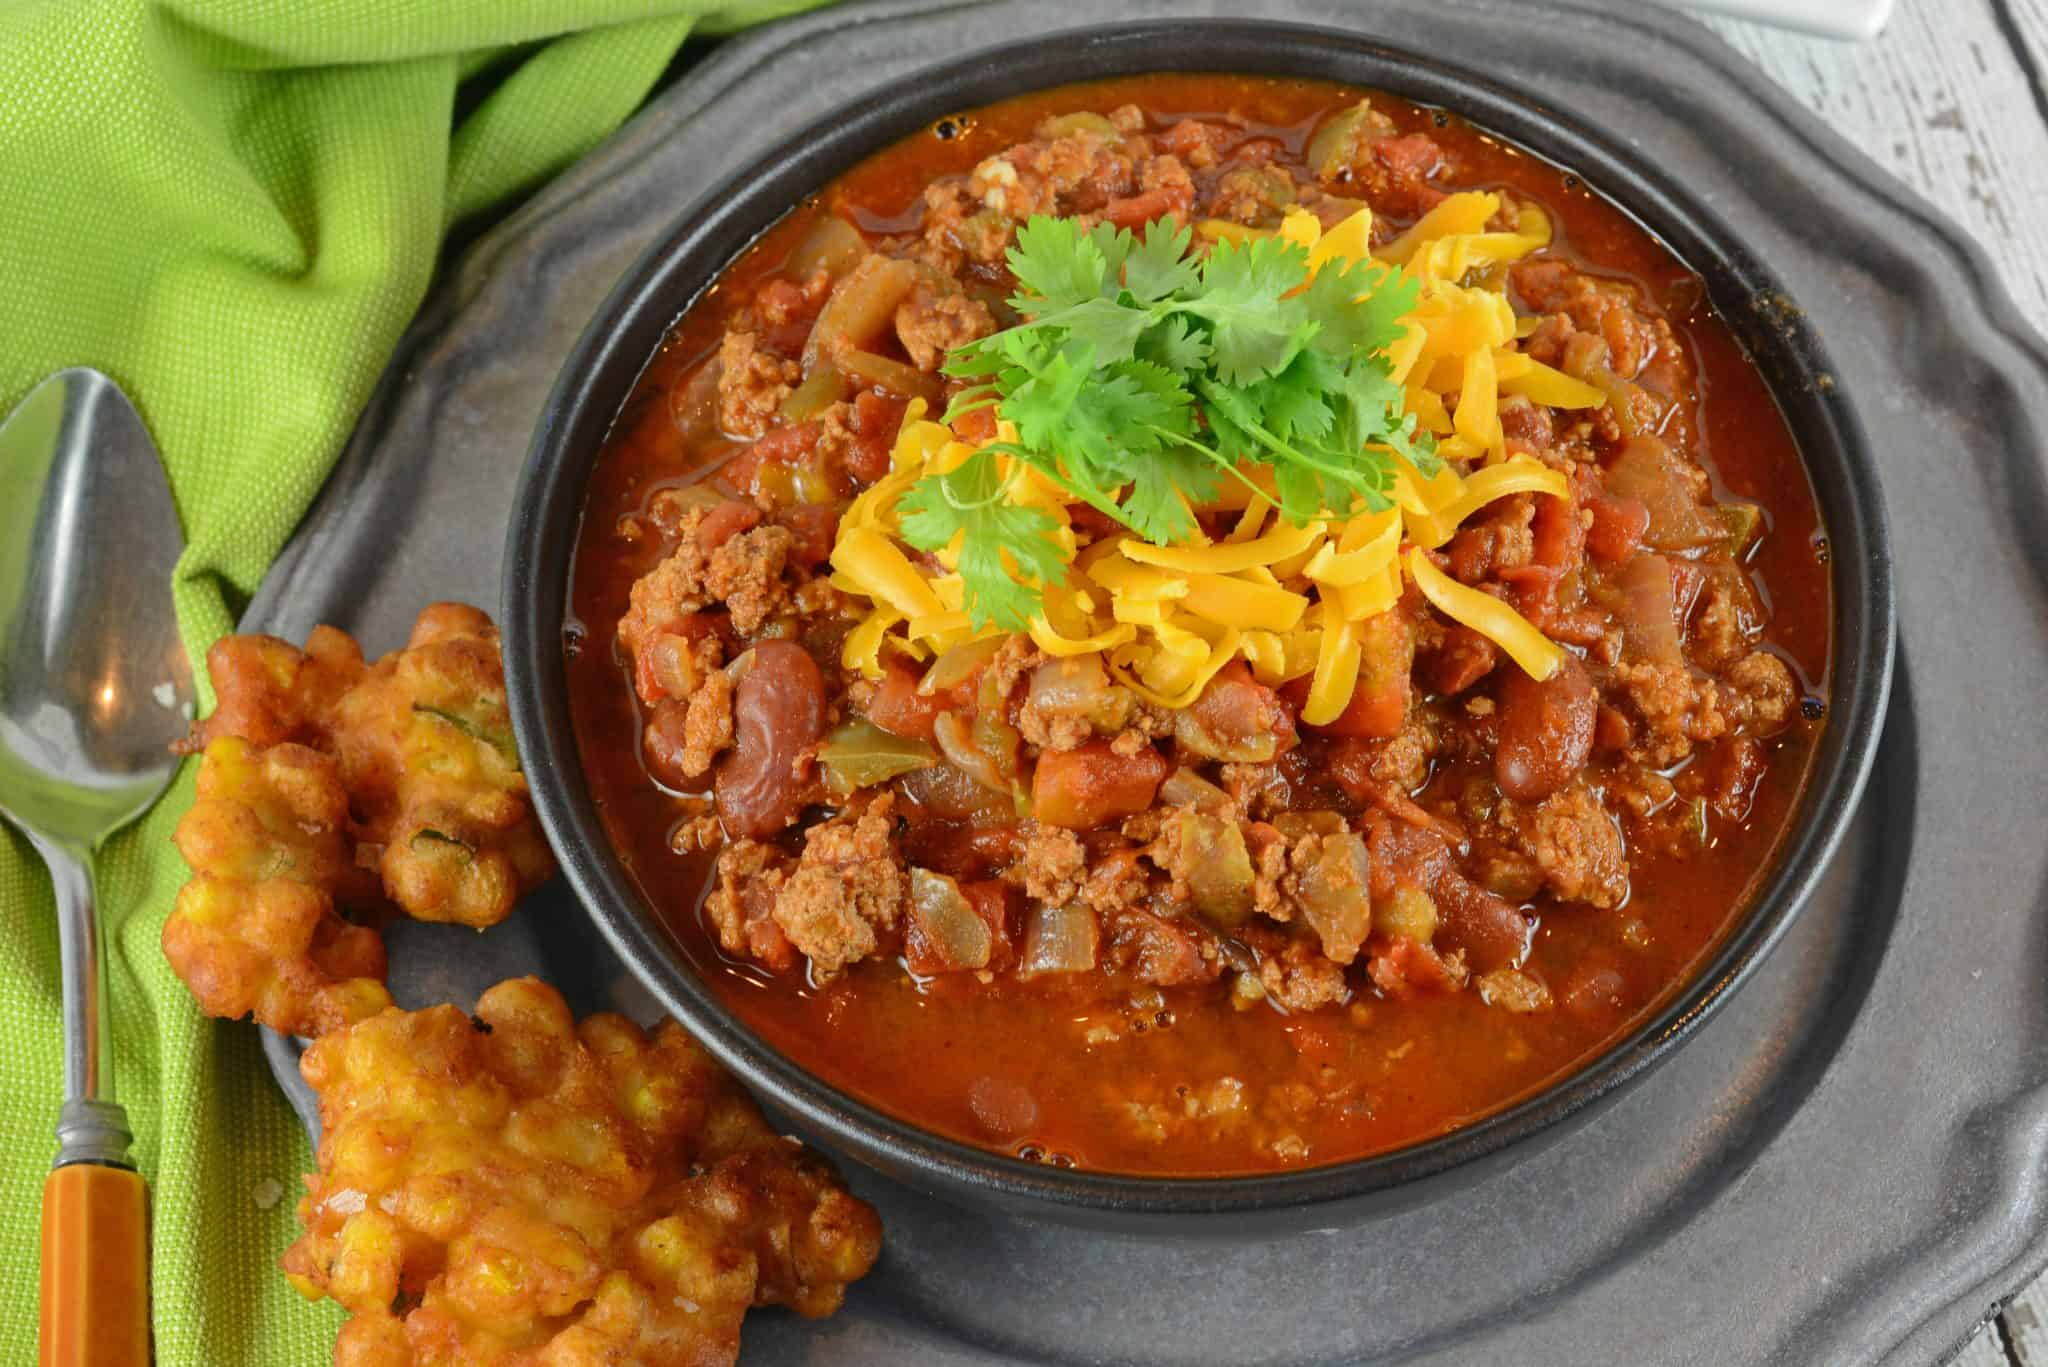 Easy Chili in a gray bowl topped with cheese